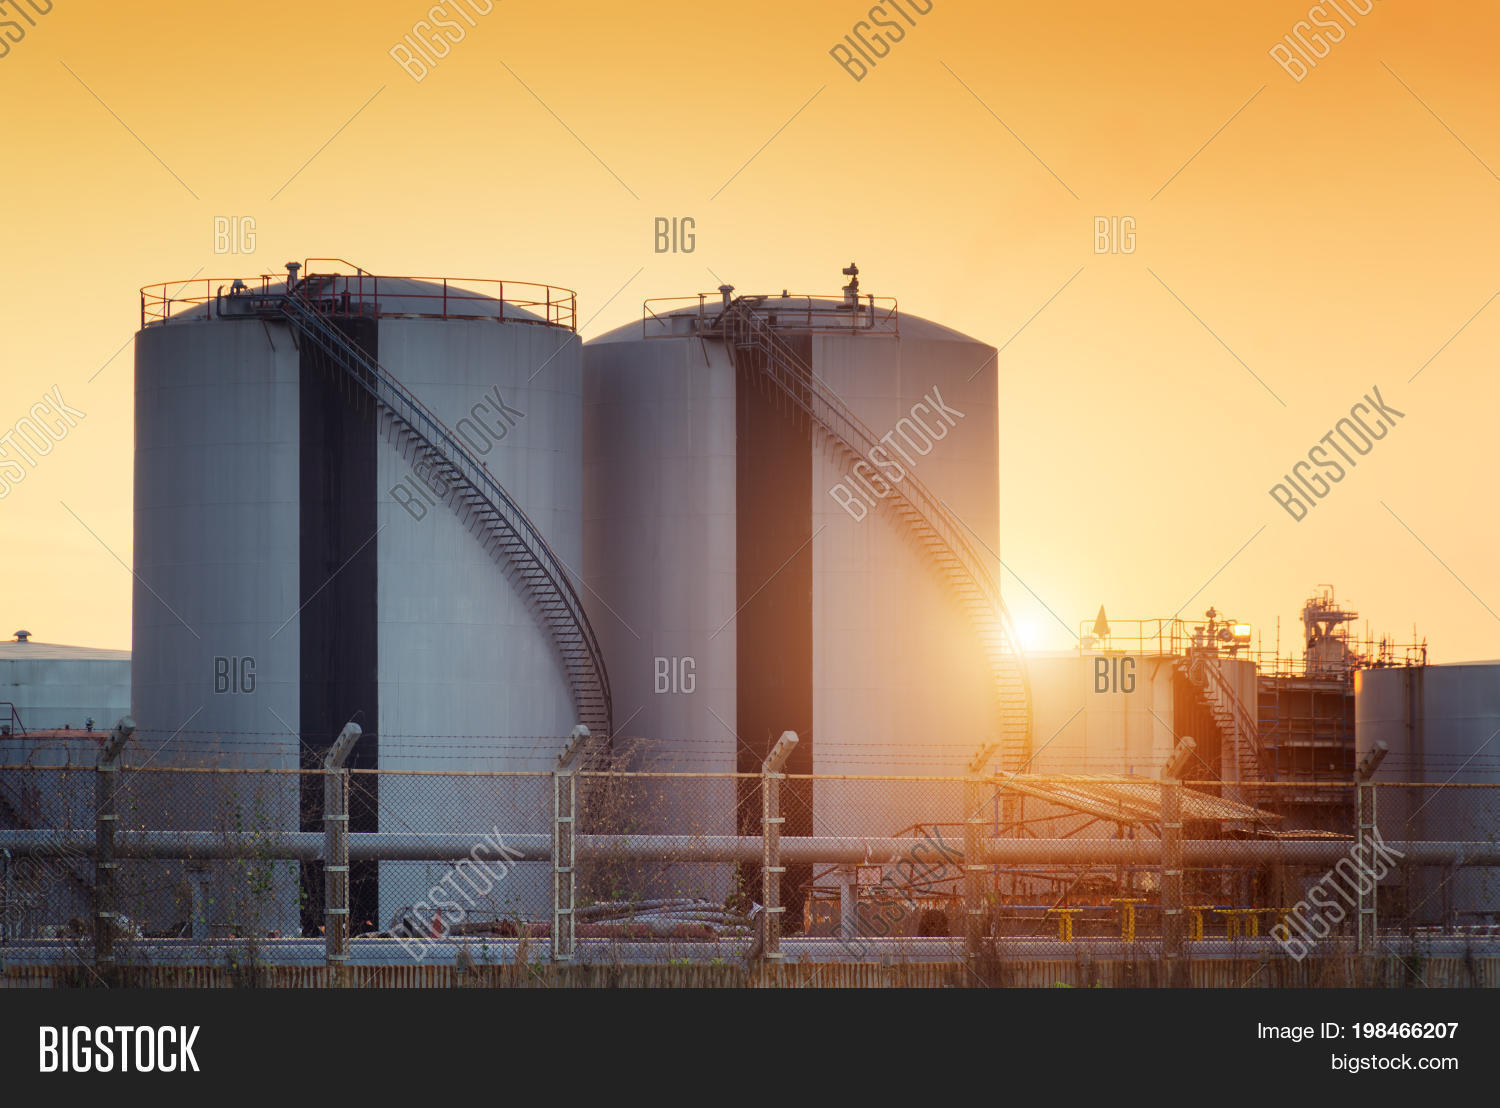 Natural Gas Storage Image & Photo (Free Trial) | Bigstock